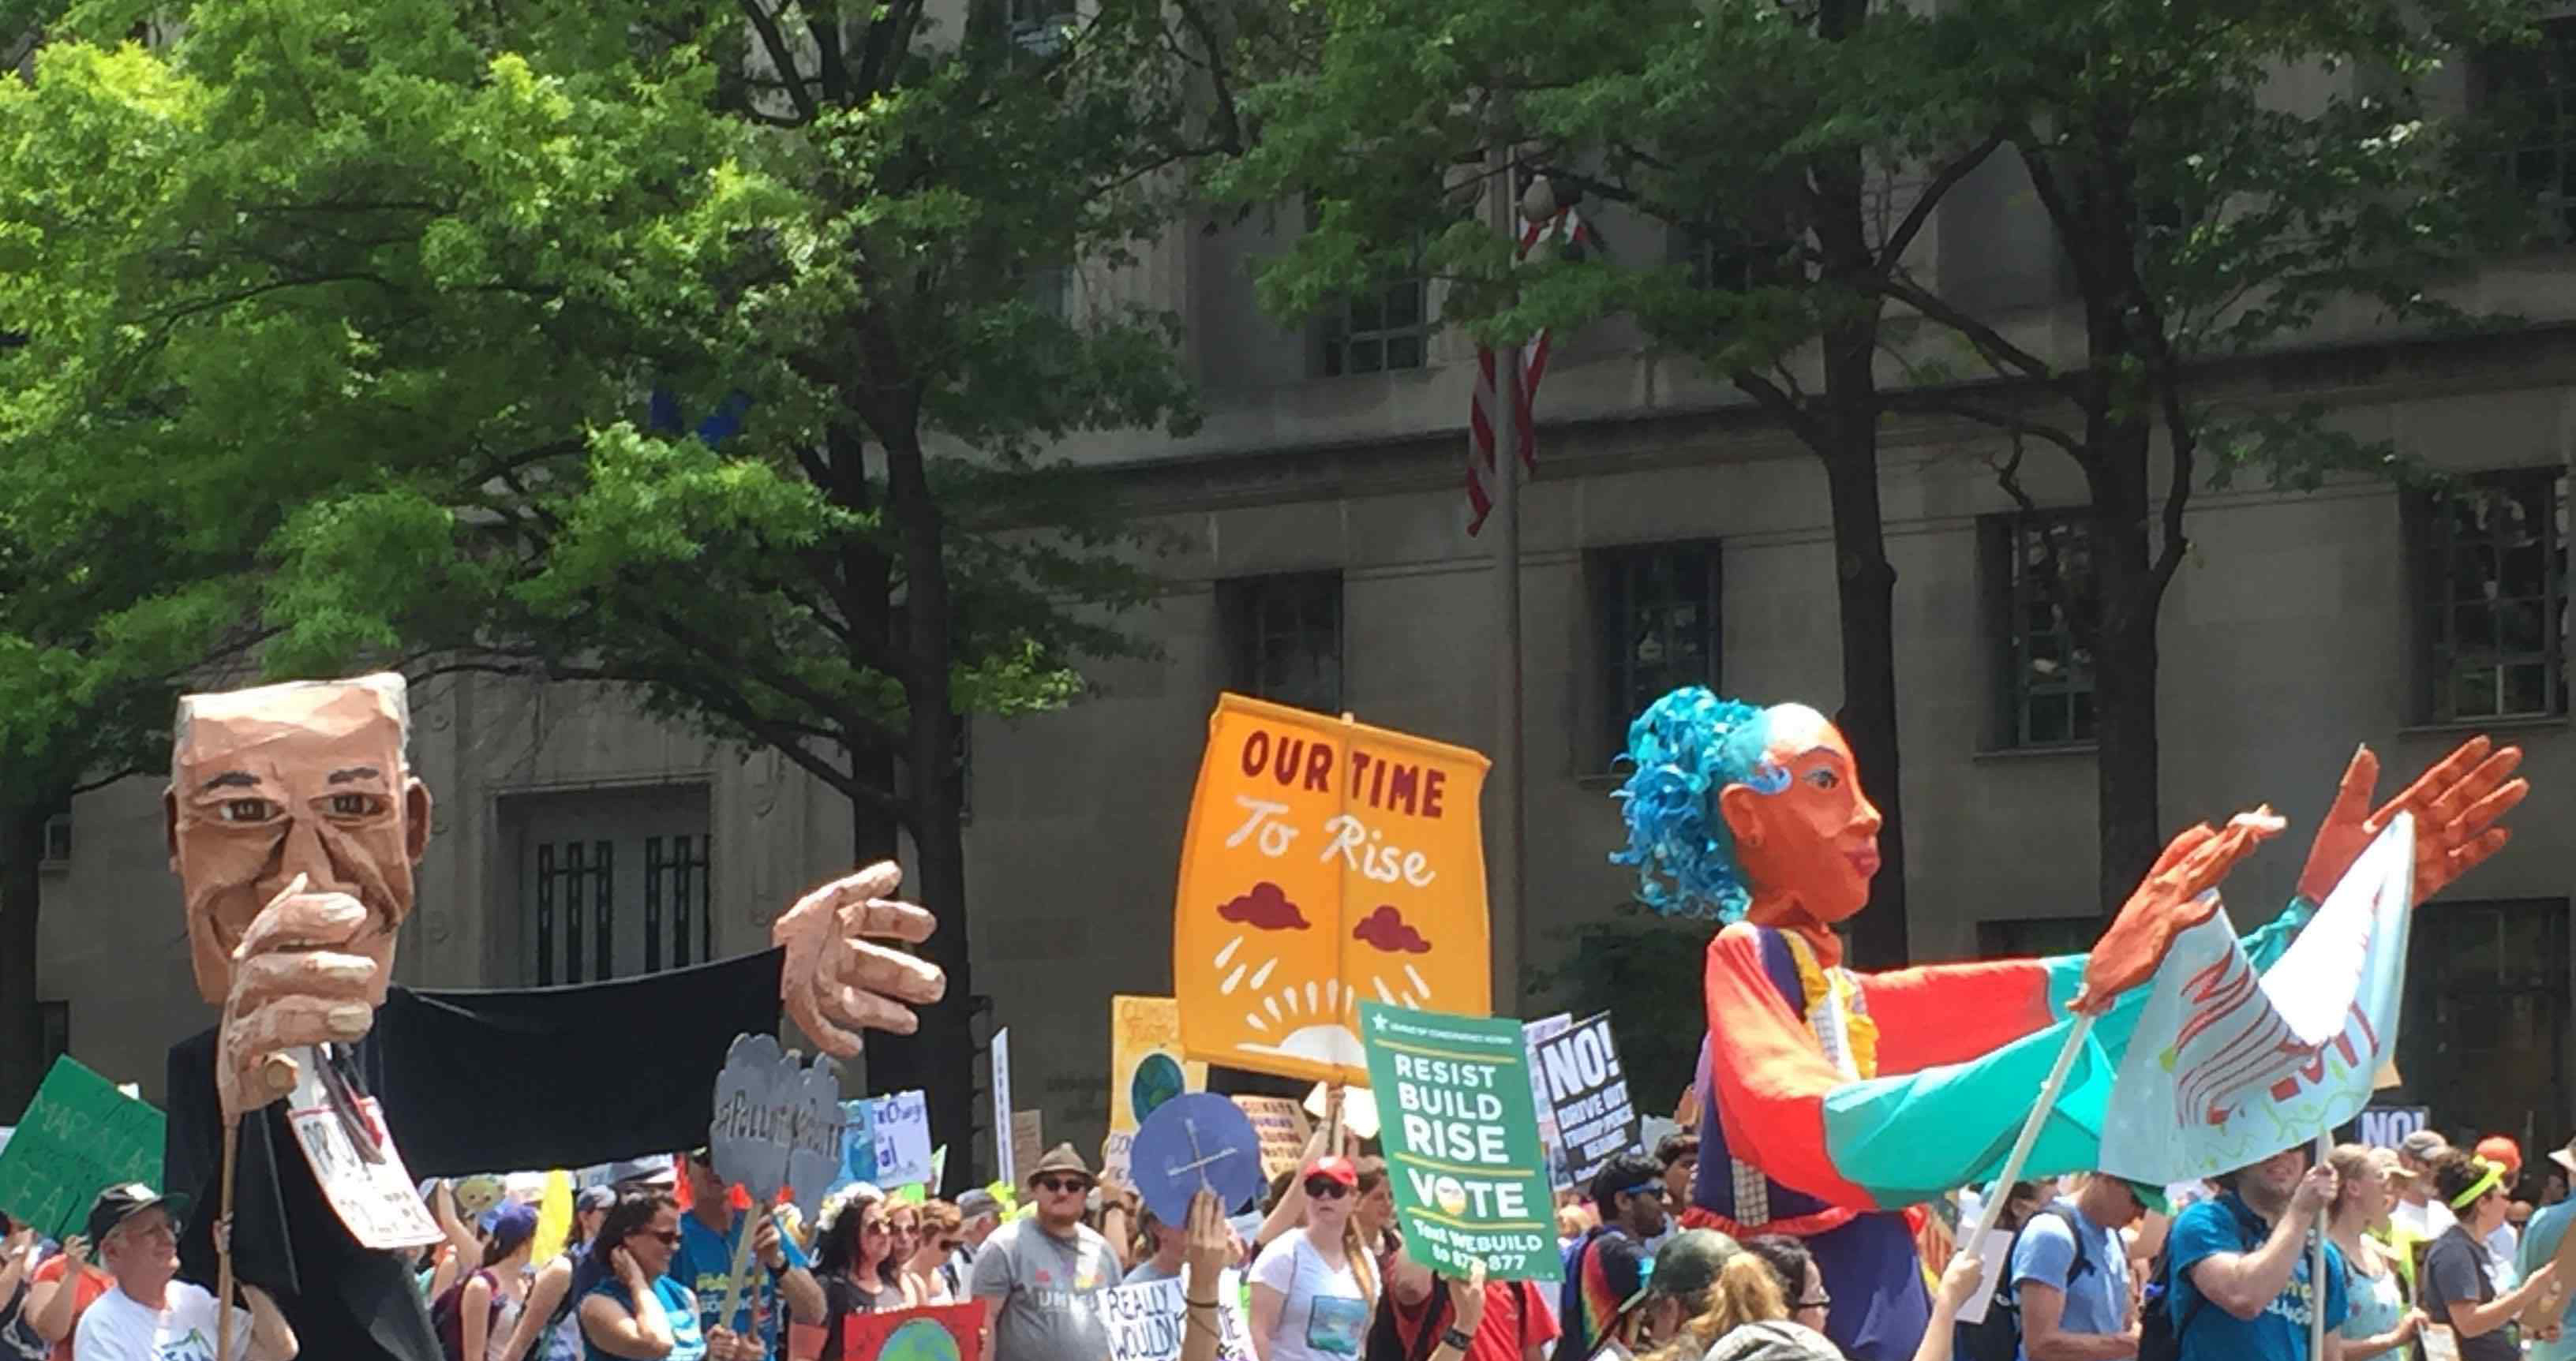 Photo: People marching in the People's Climate March with signs and paper mache puppets